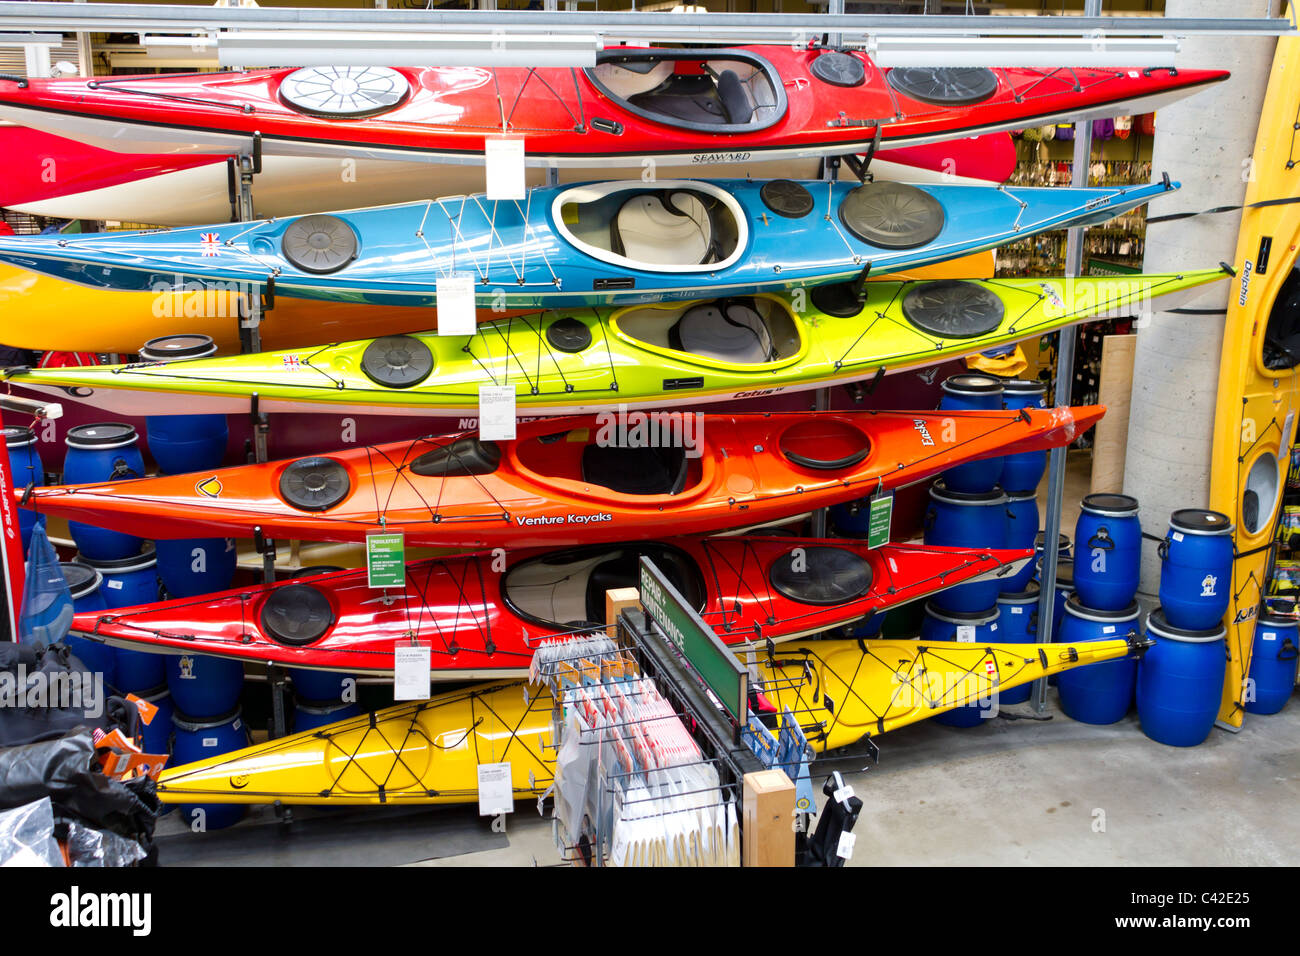 Kayak For Sale Stock Photos & Kayak For Sale Stock Images